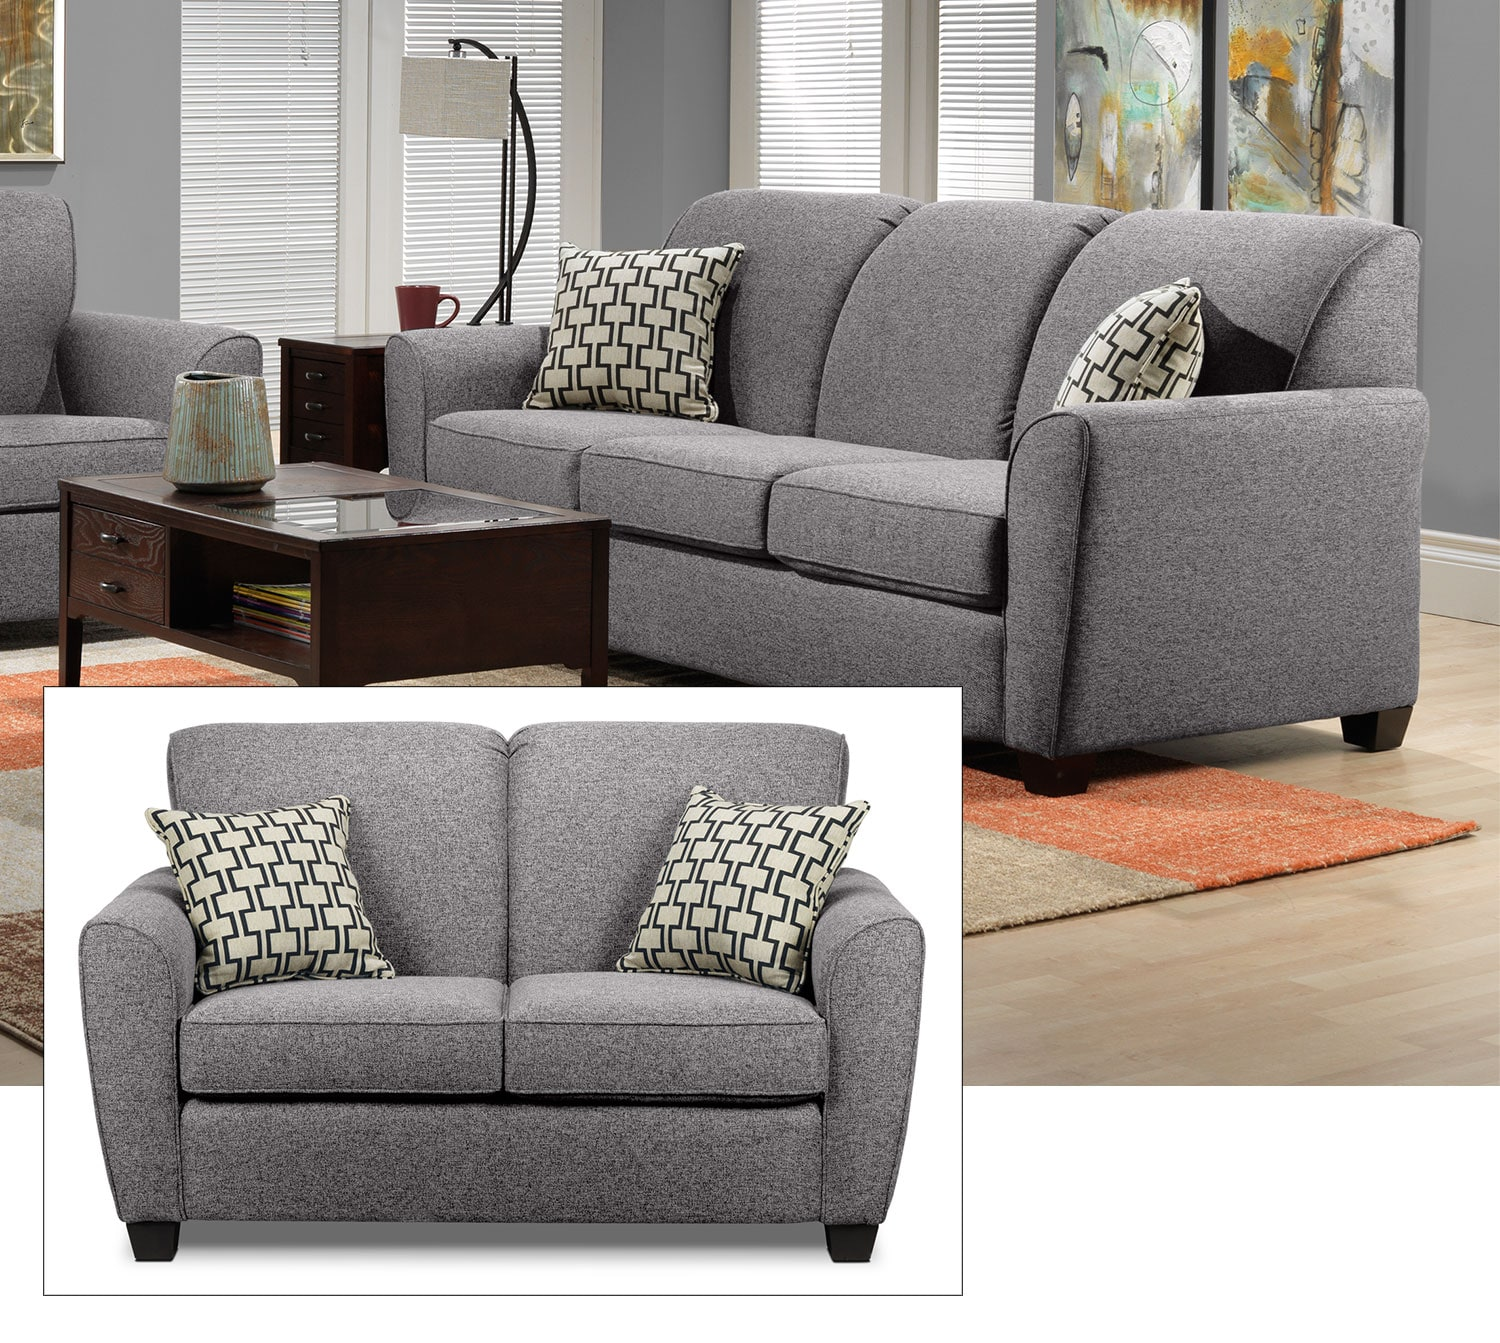 Ashby 2 Pc. Living Room Package w/ Loveseat - Oreo